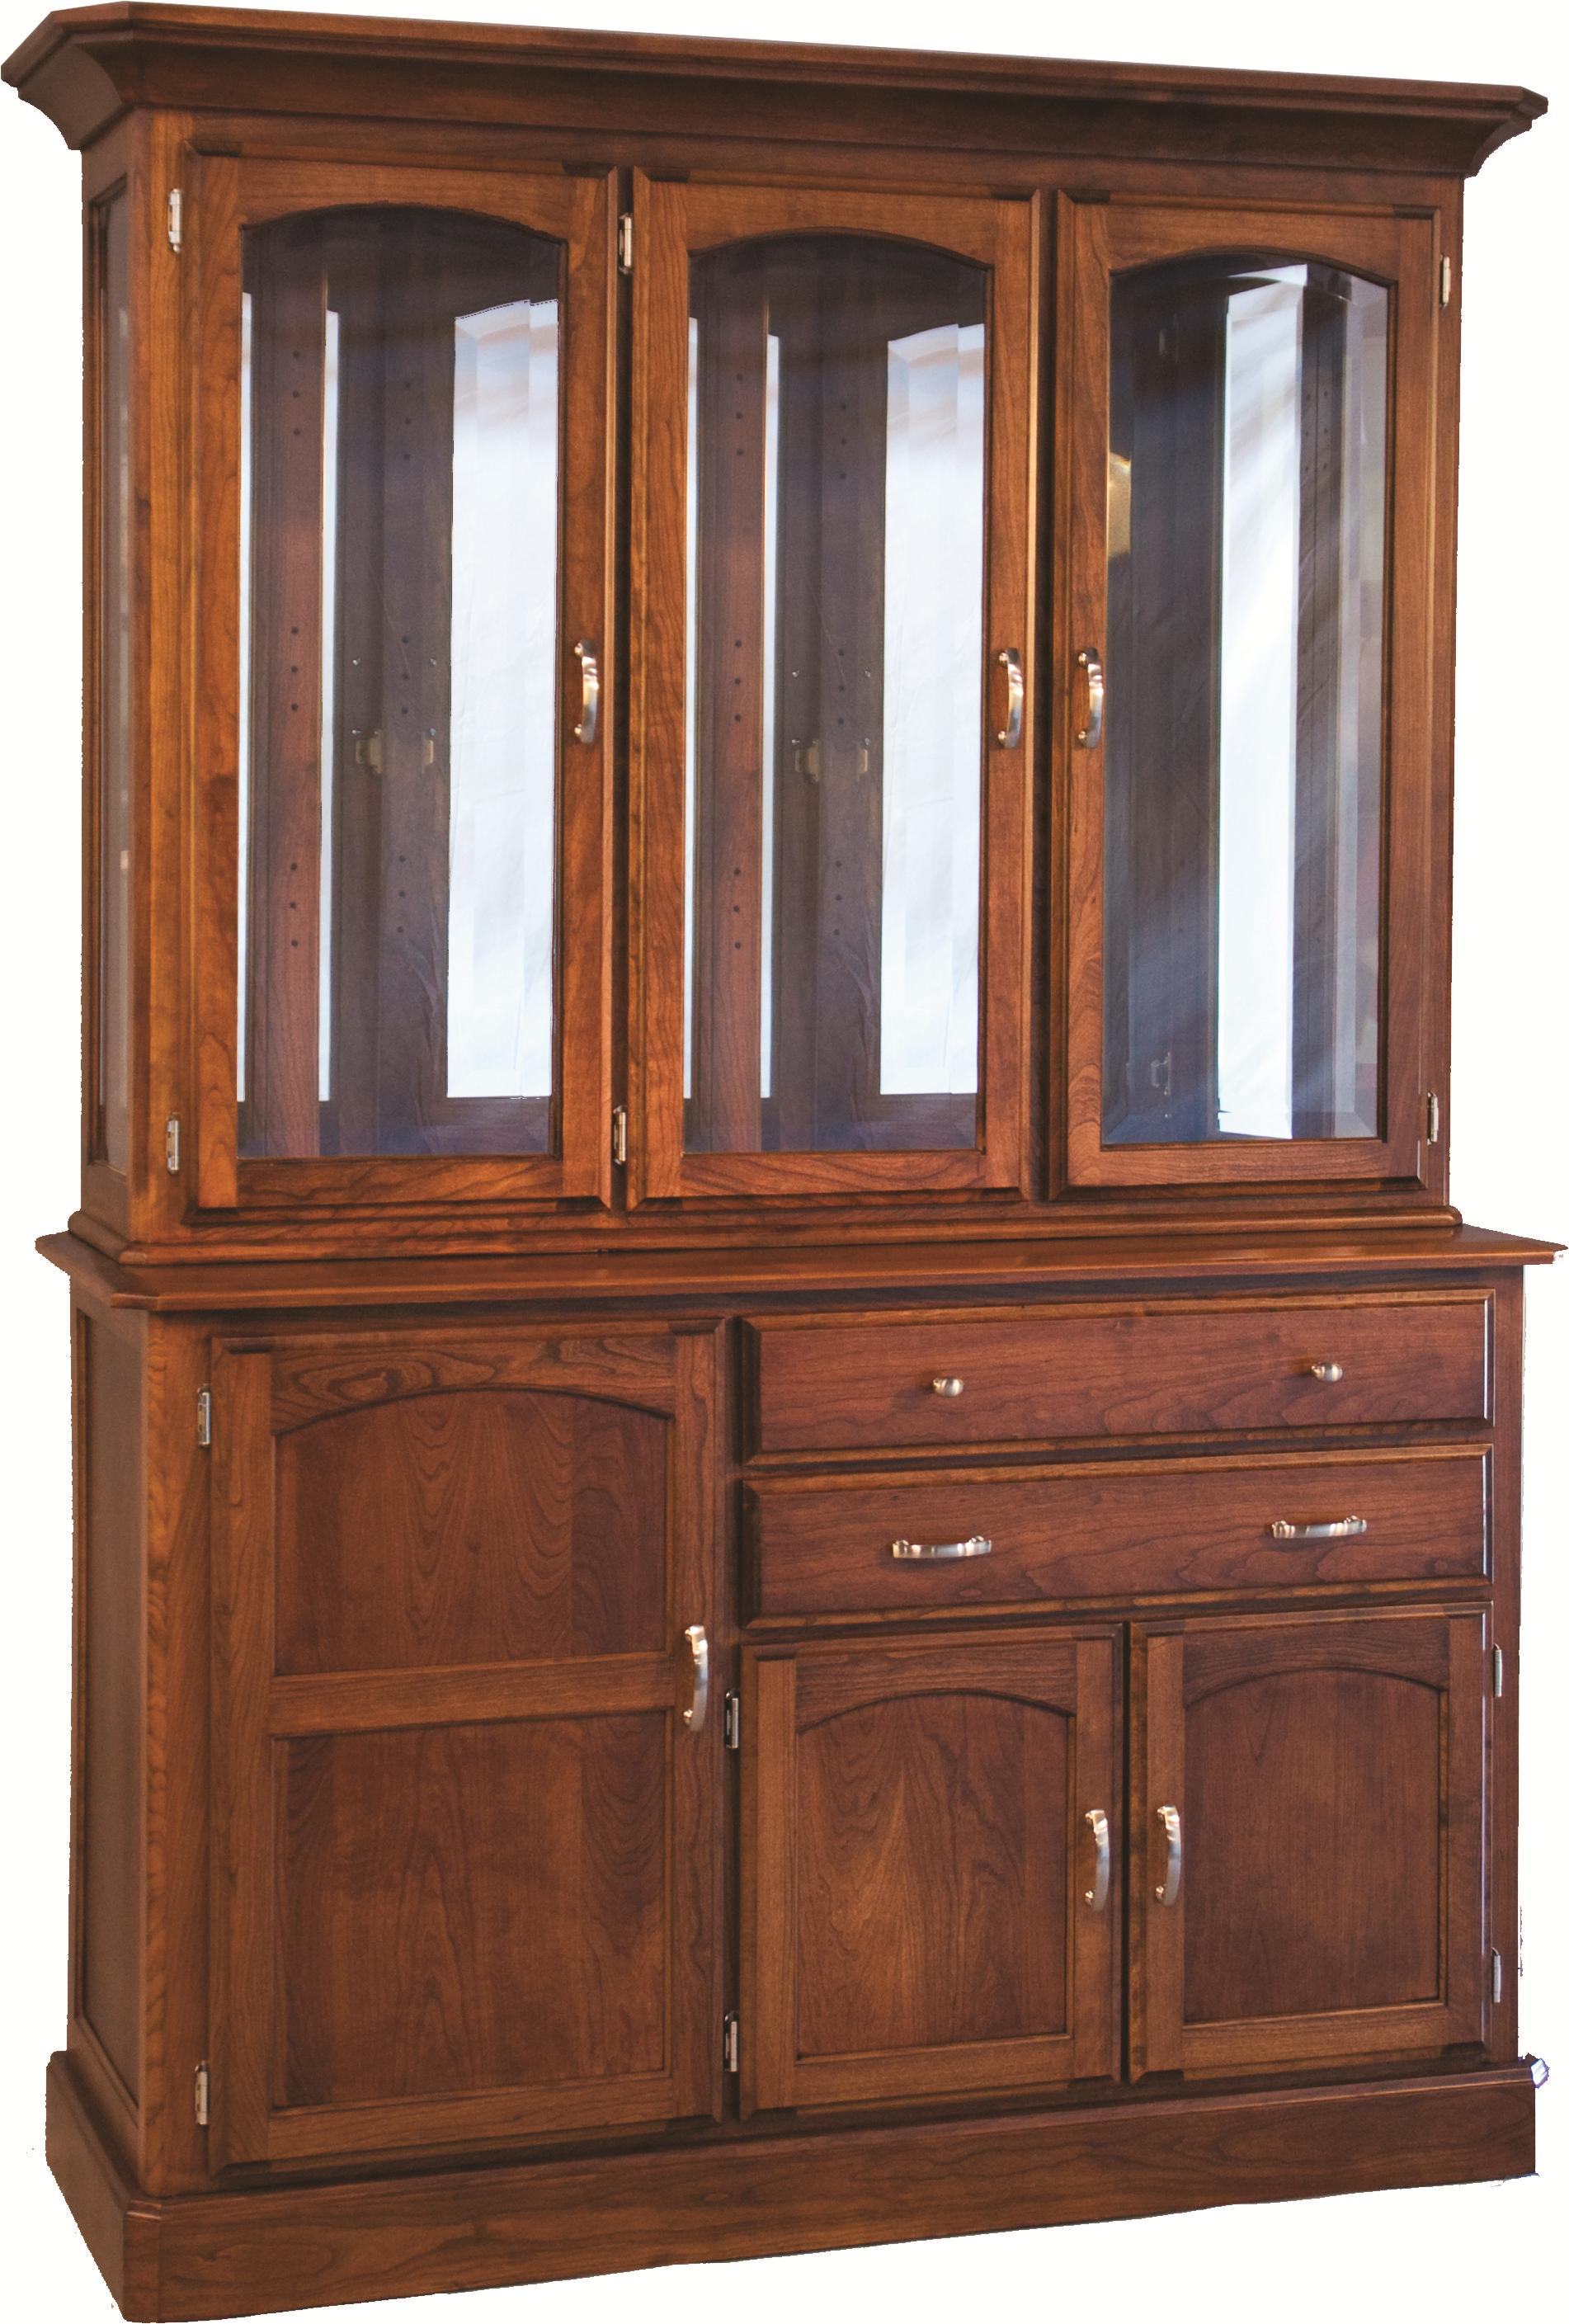 Casual Dining Newport Hutch and Buffet by Oakwood Industries at Mueller Furniture